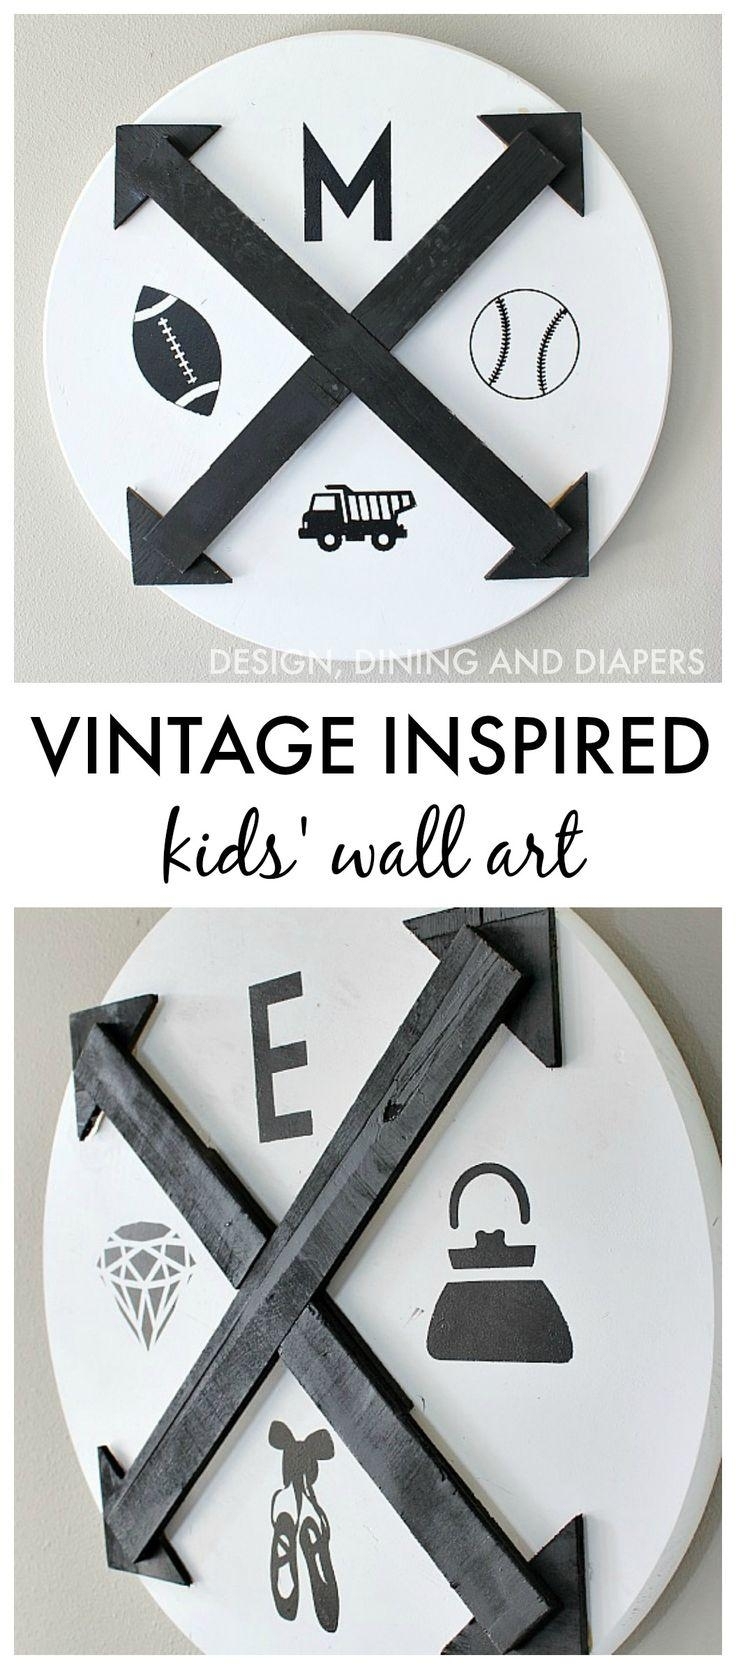 221 Best Silhouette Stencils Images On Pinterest | Silhouette Inside Cameo Wall Art (Image 1 of 20)